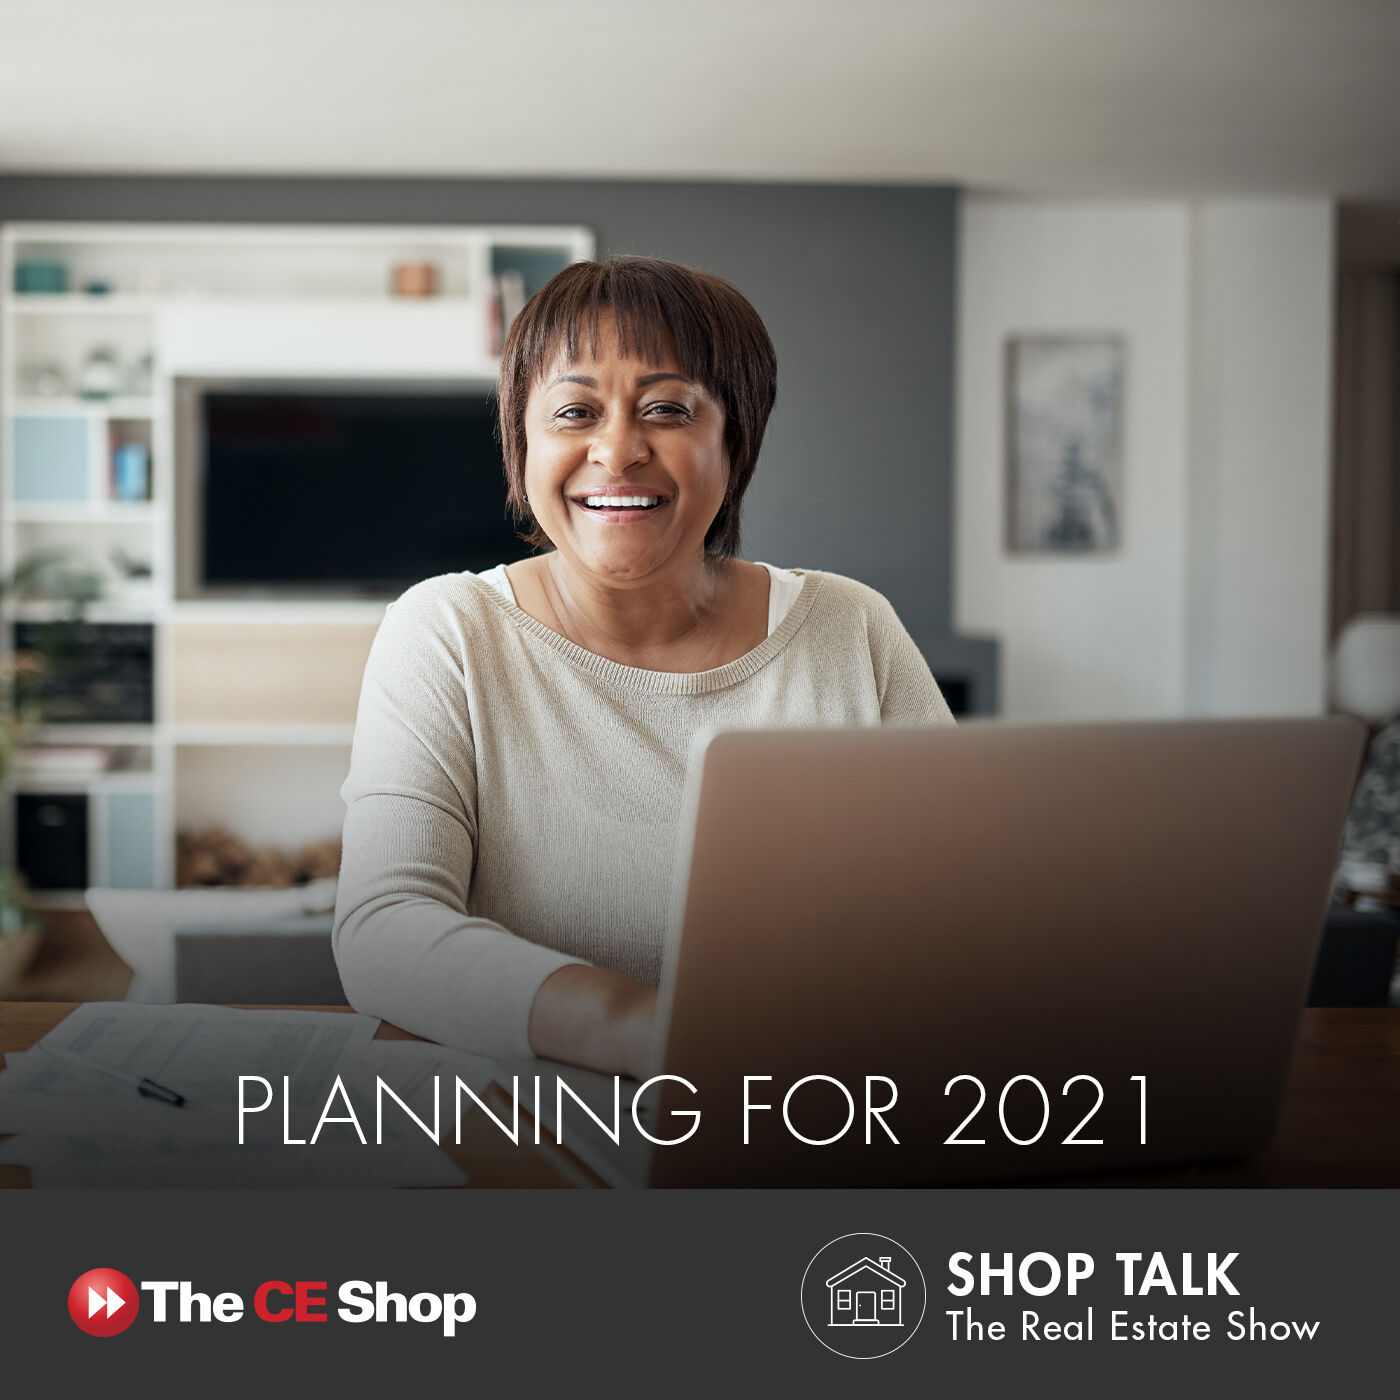 57: Planning for 2021